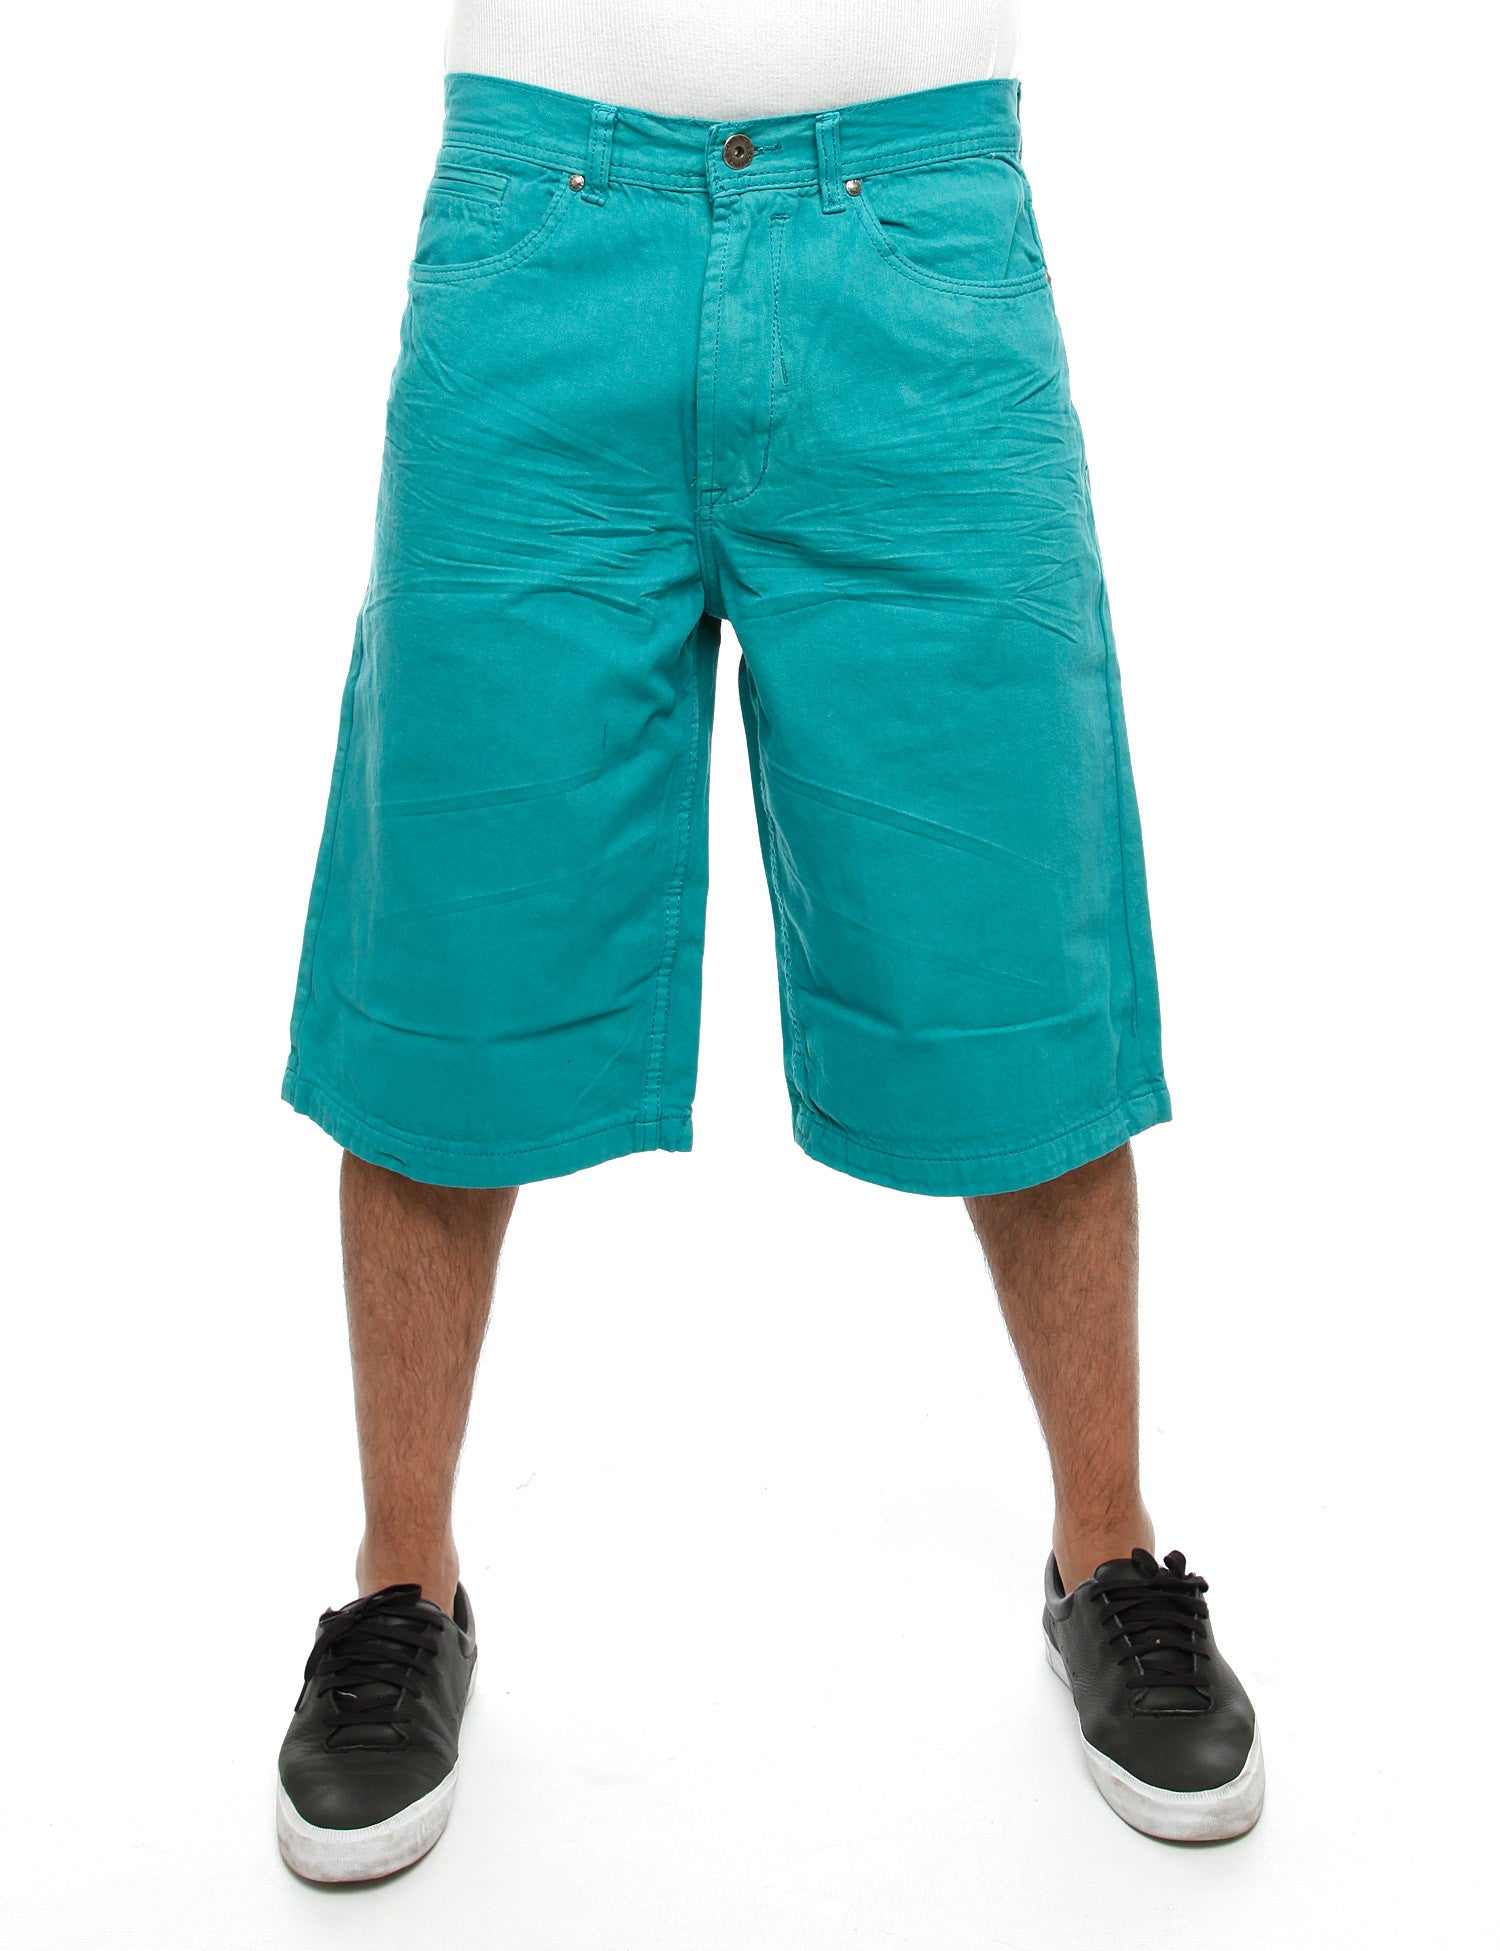 Royal Blue Shorts 9014 Harbor Blue